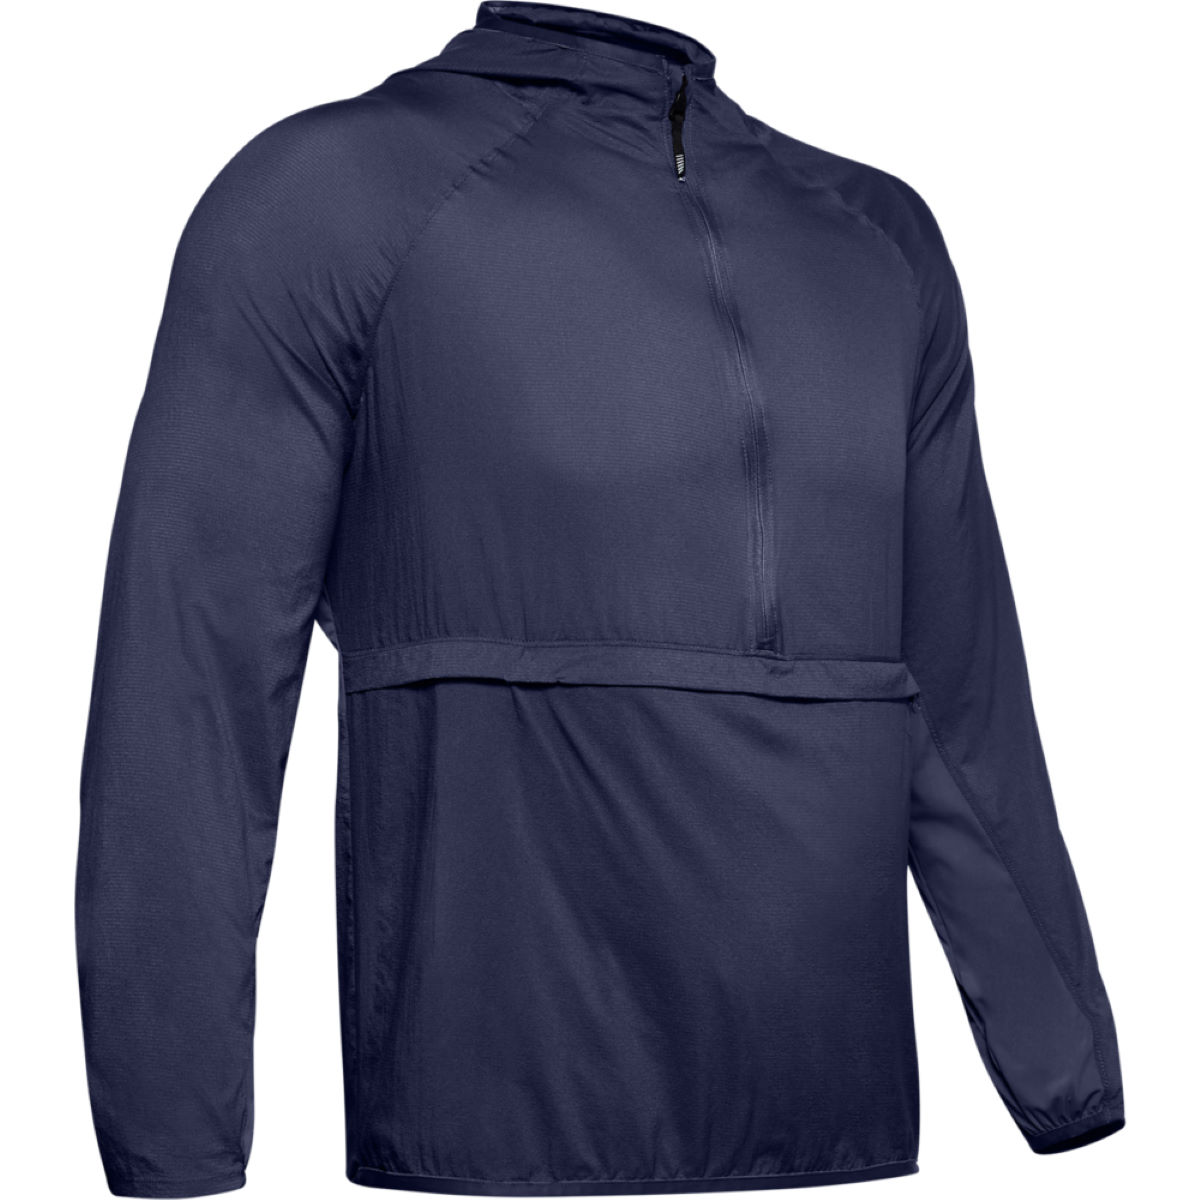 Under Armour Under Armour Qualifier Weightless Packable Jacket   Jackets